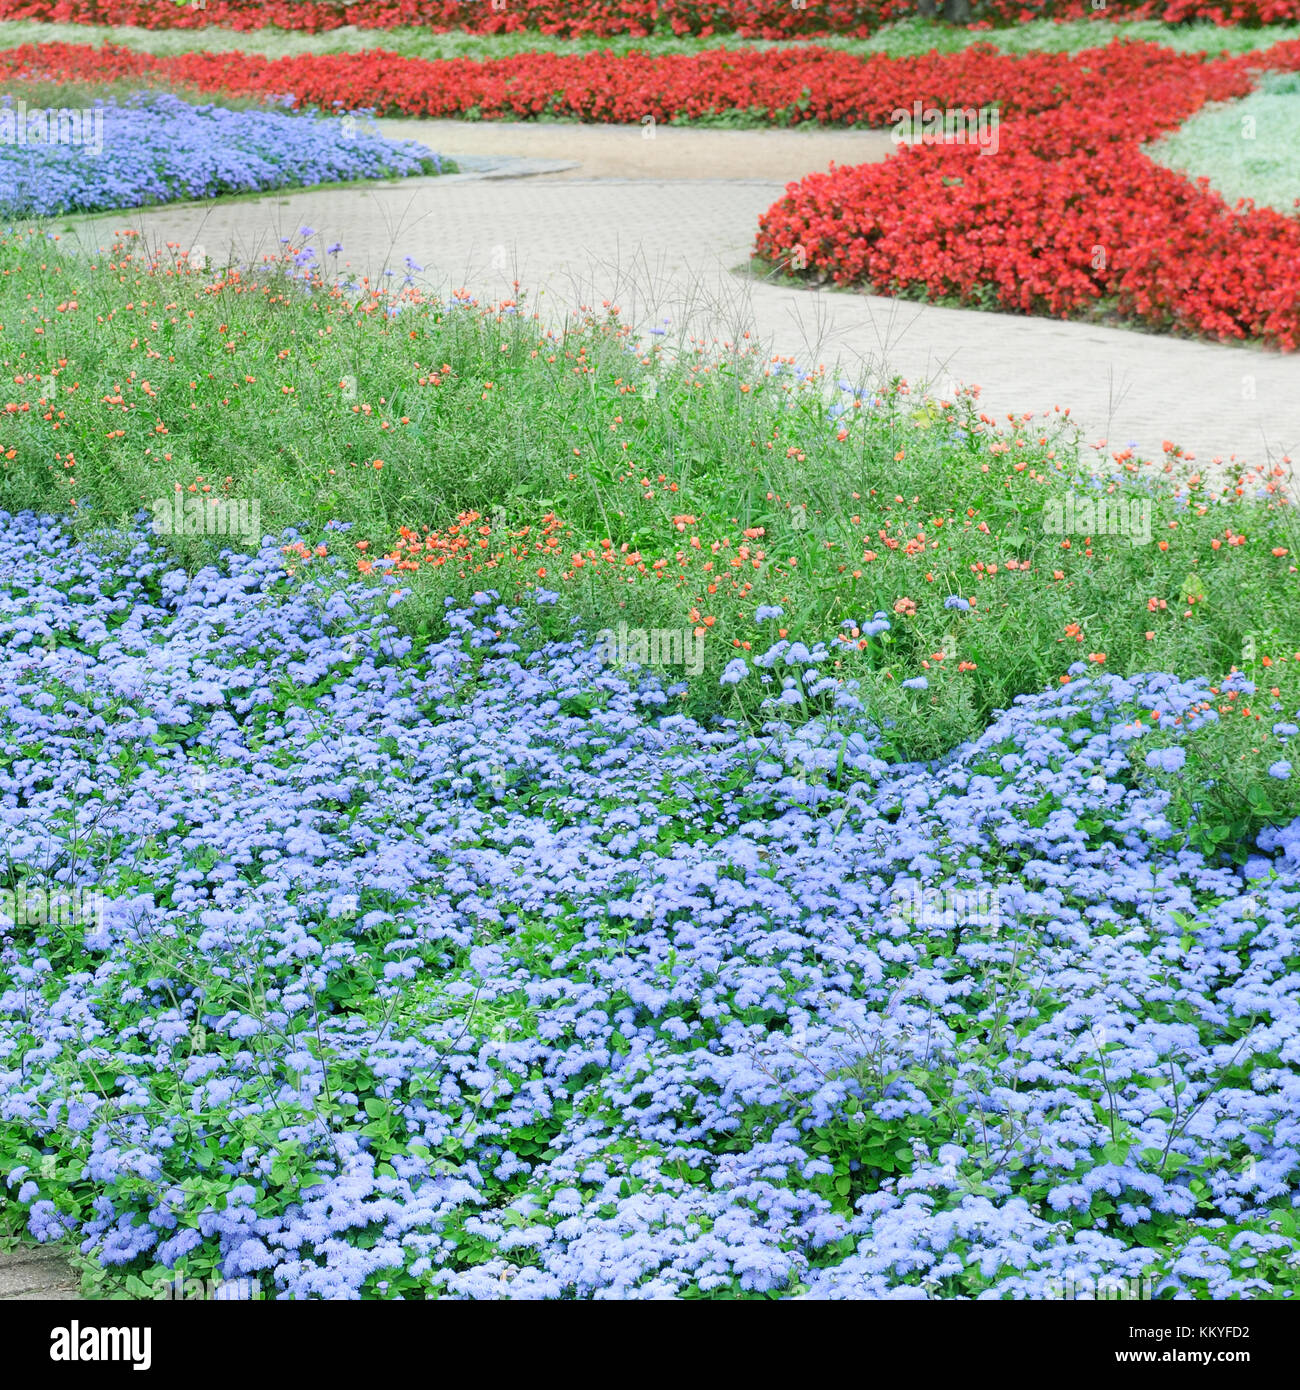 Beautiful Flower Beds And Walking Paths Stock Photo 167176606 Alamy